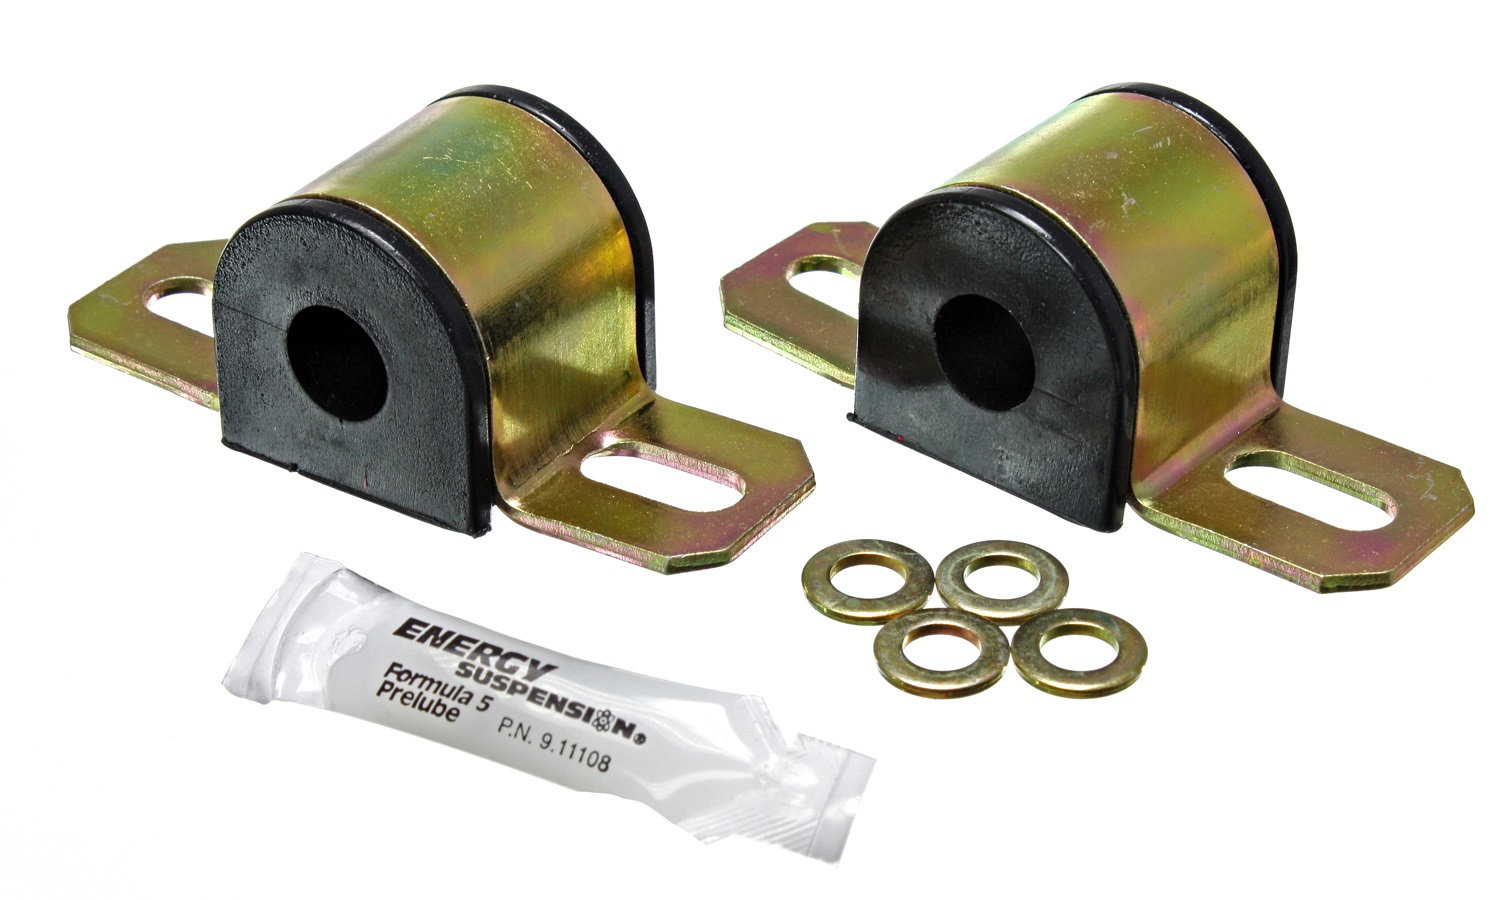 Energy Suspension Suspension Stabilizer Bar Bushing Kit (9.5108G)